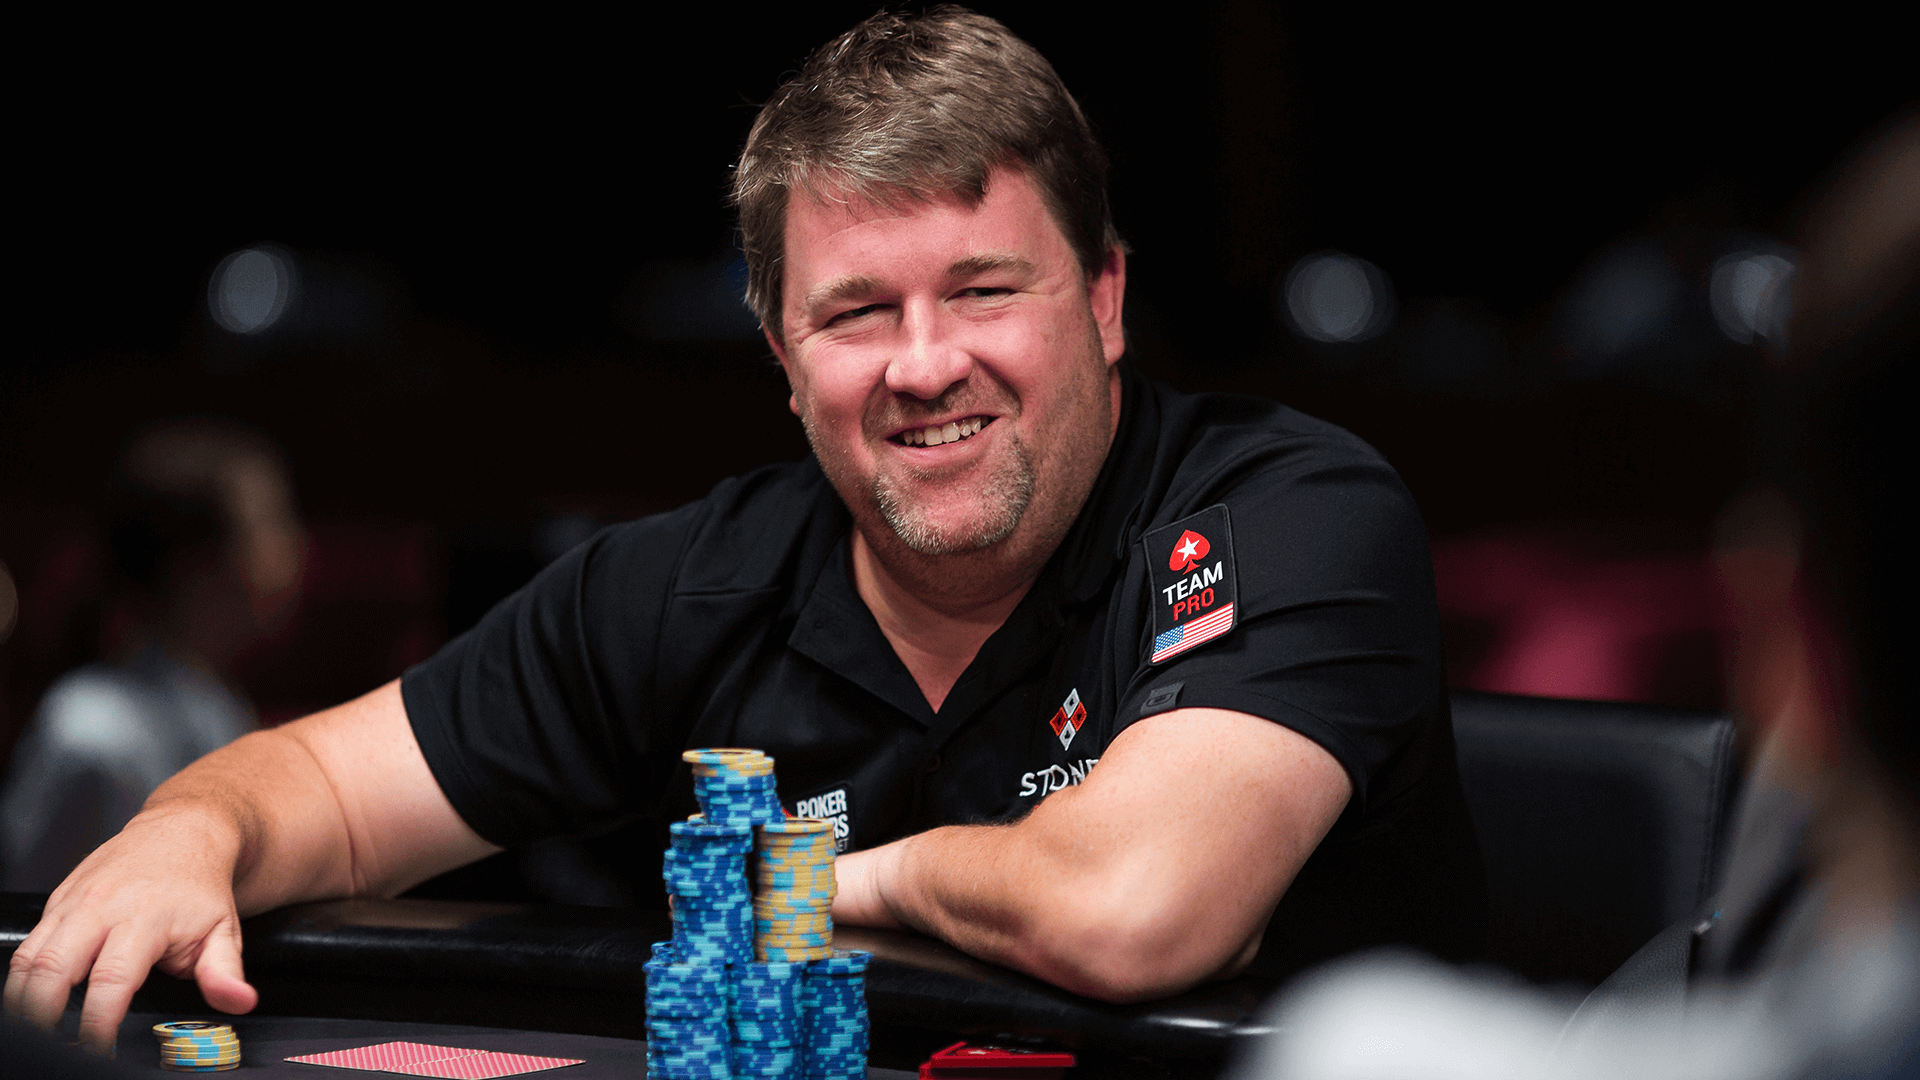 """Chris Moneymaker: """"People are getting back into poker"""""""